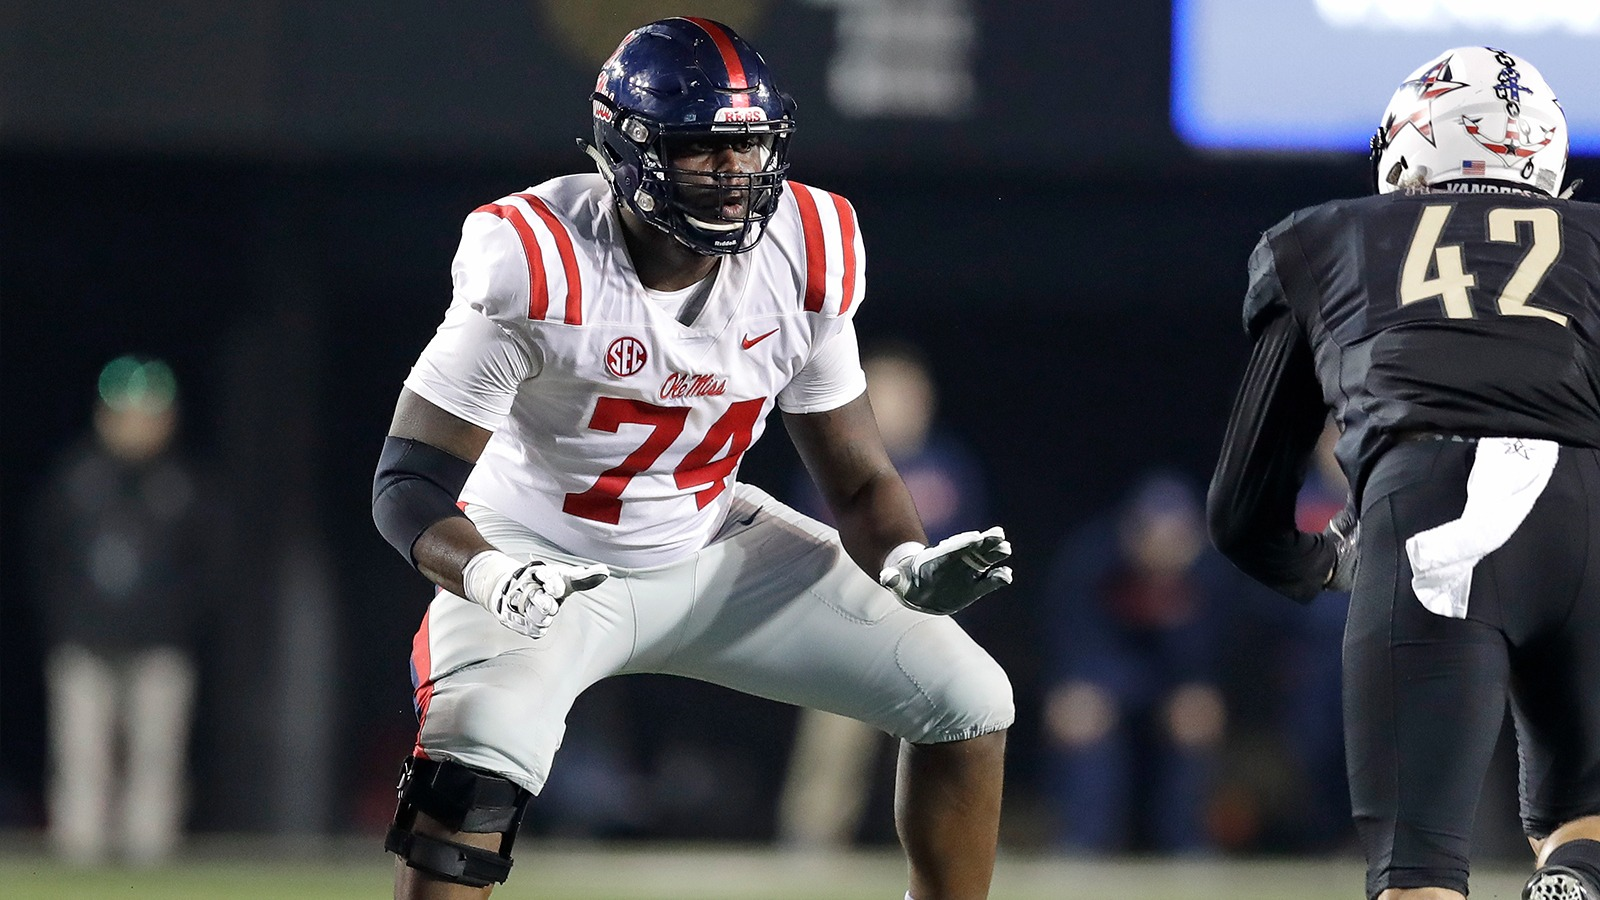 OL Greg Little, Ole Miss